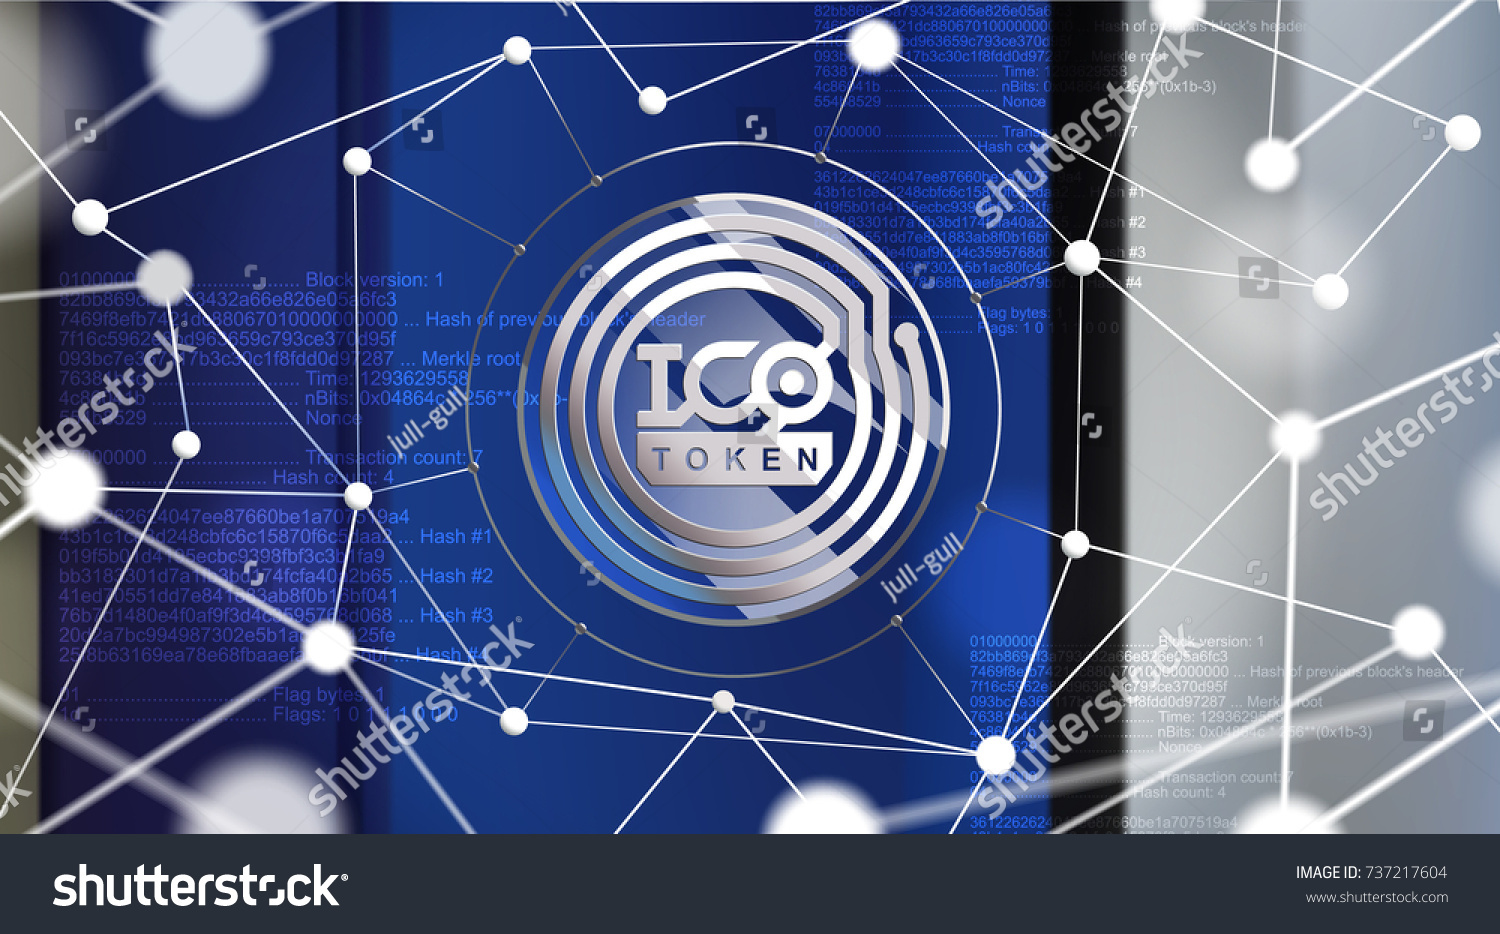 Ico Initial Coin Offering Ico Token Stock Vector (Royalty Free